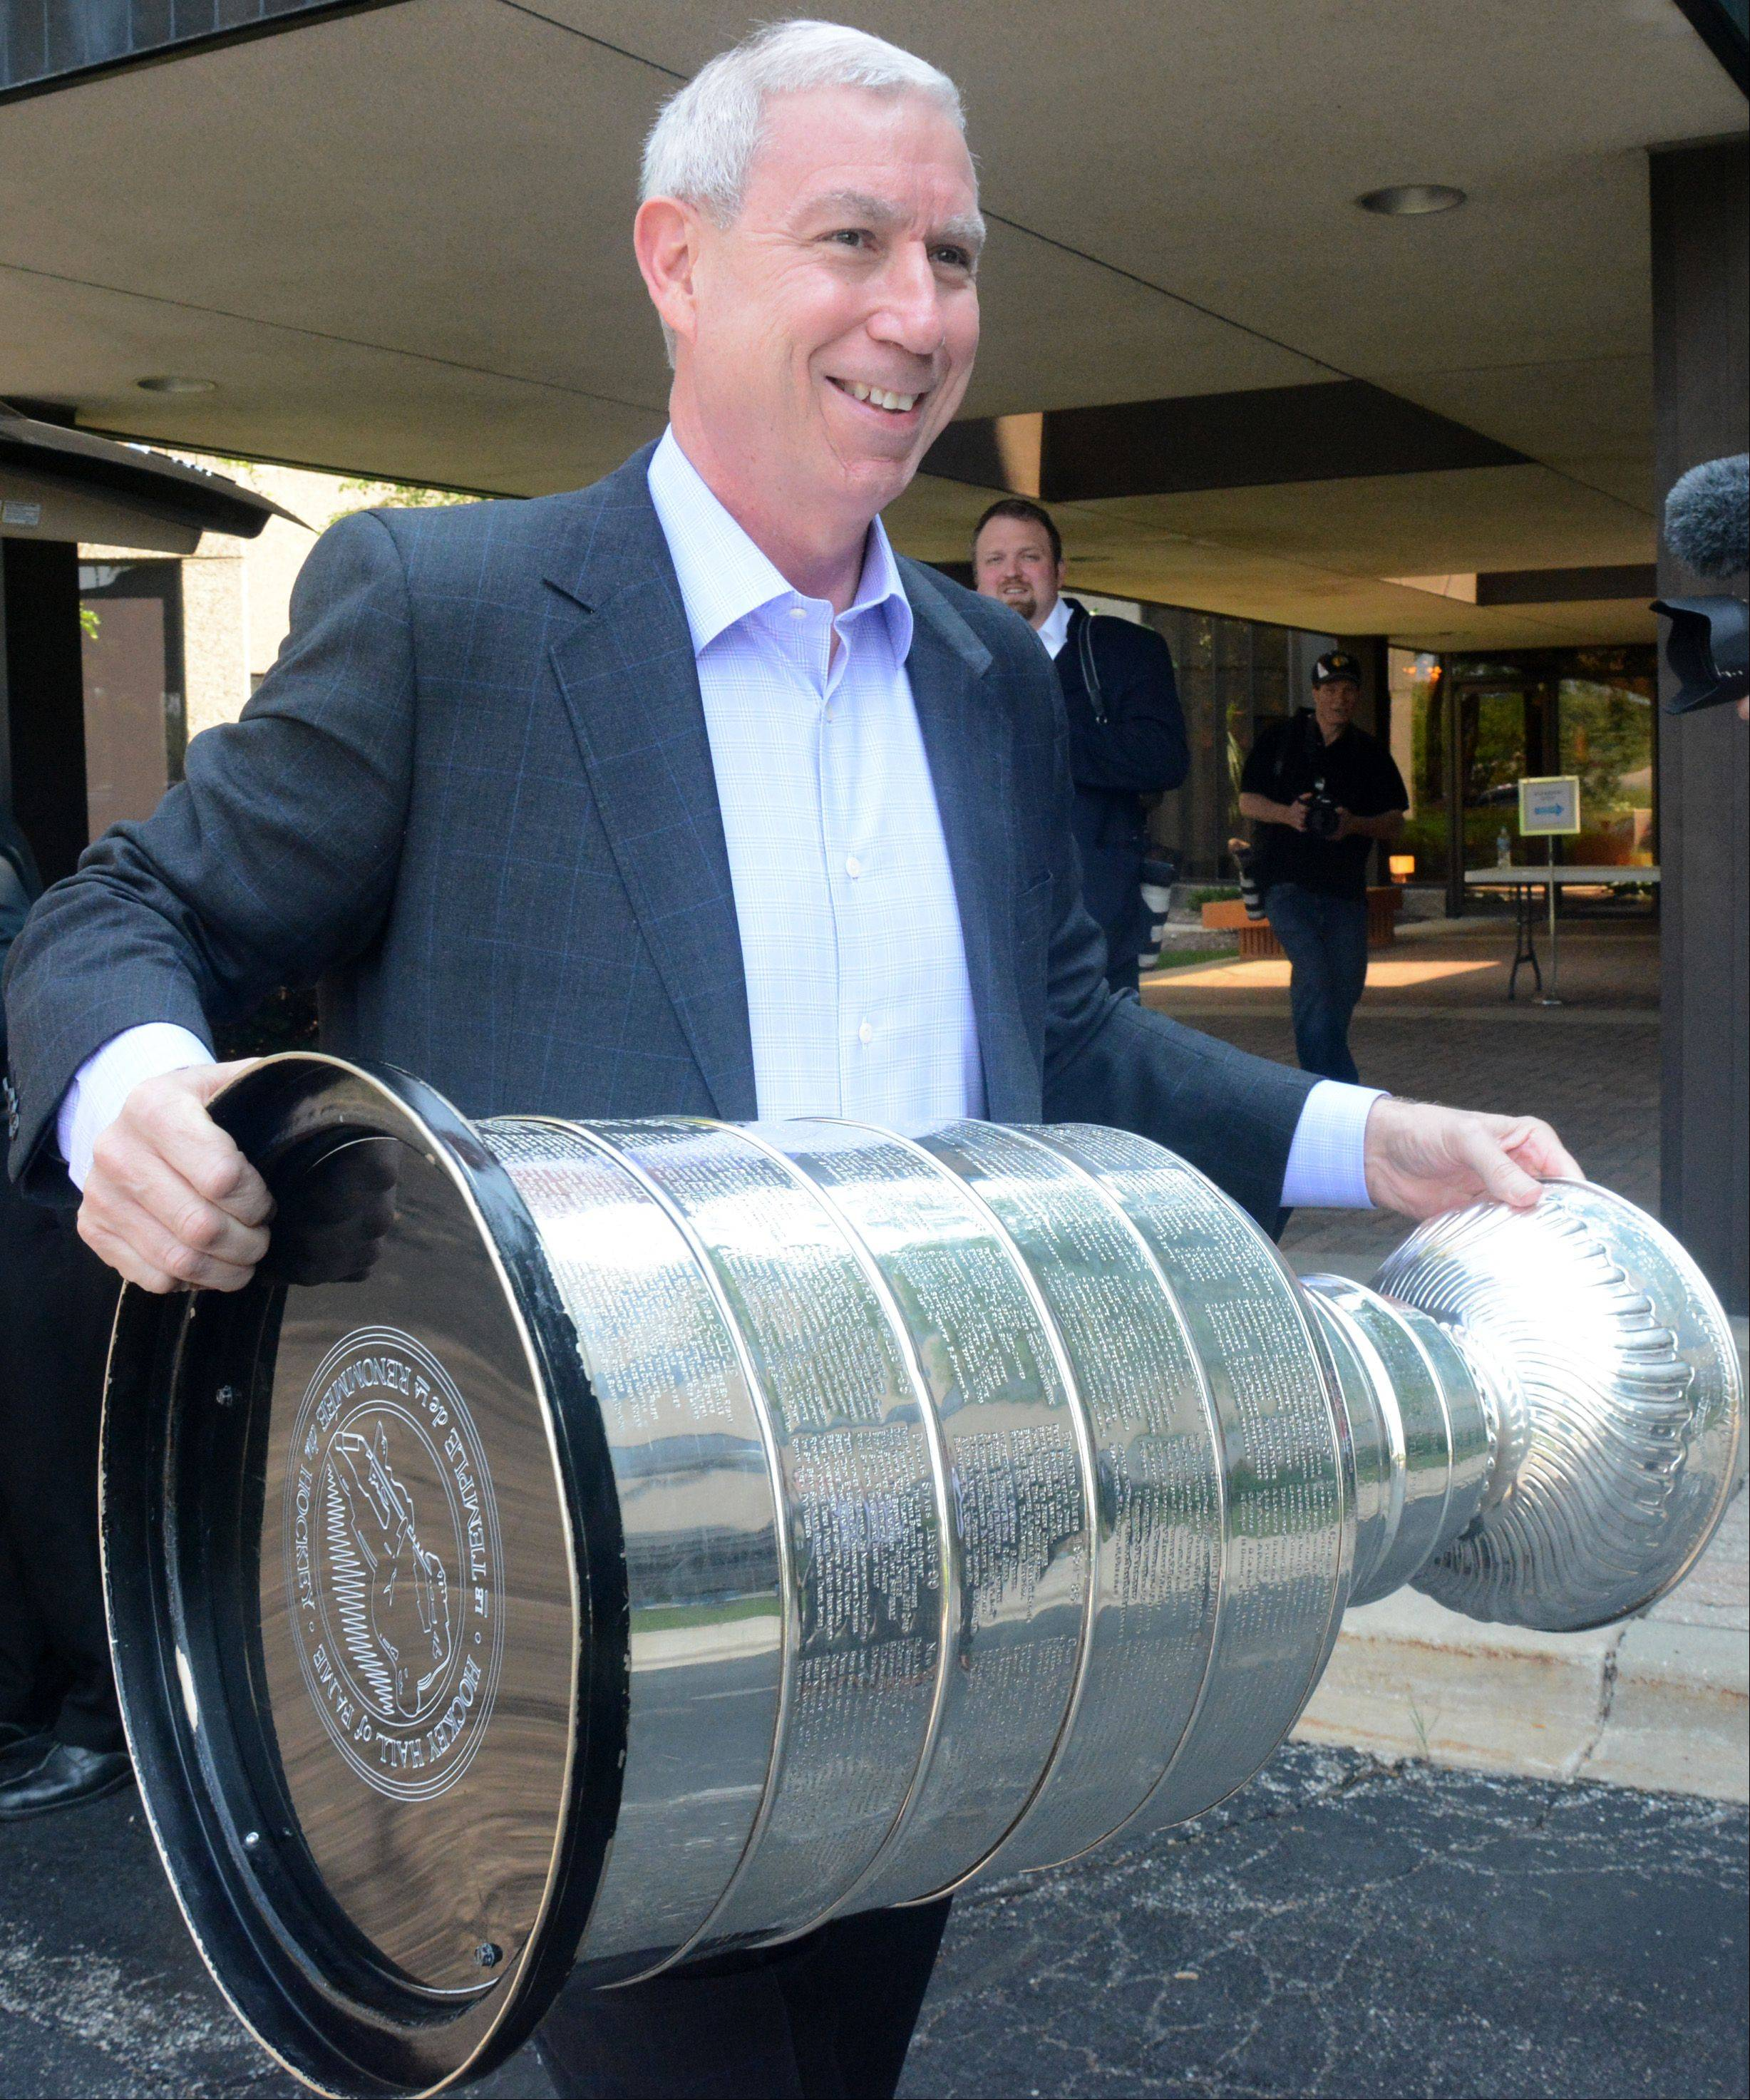 Hawks President John McDonough carries the Stanley Cup into the Daily Herald office Friday in Arlington Heights.